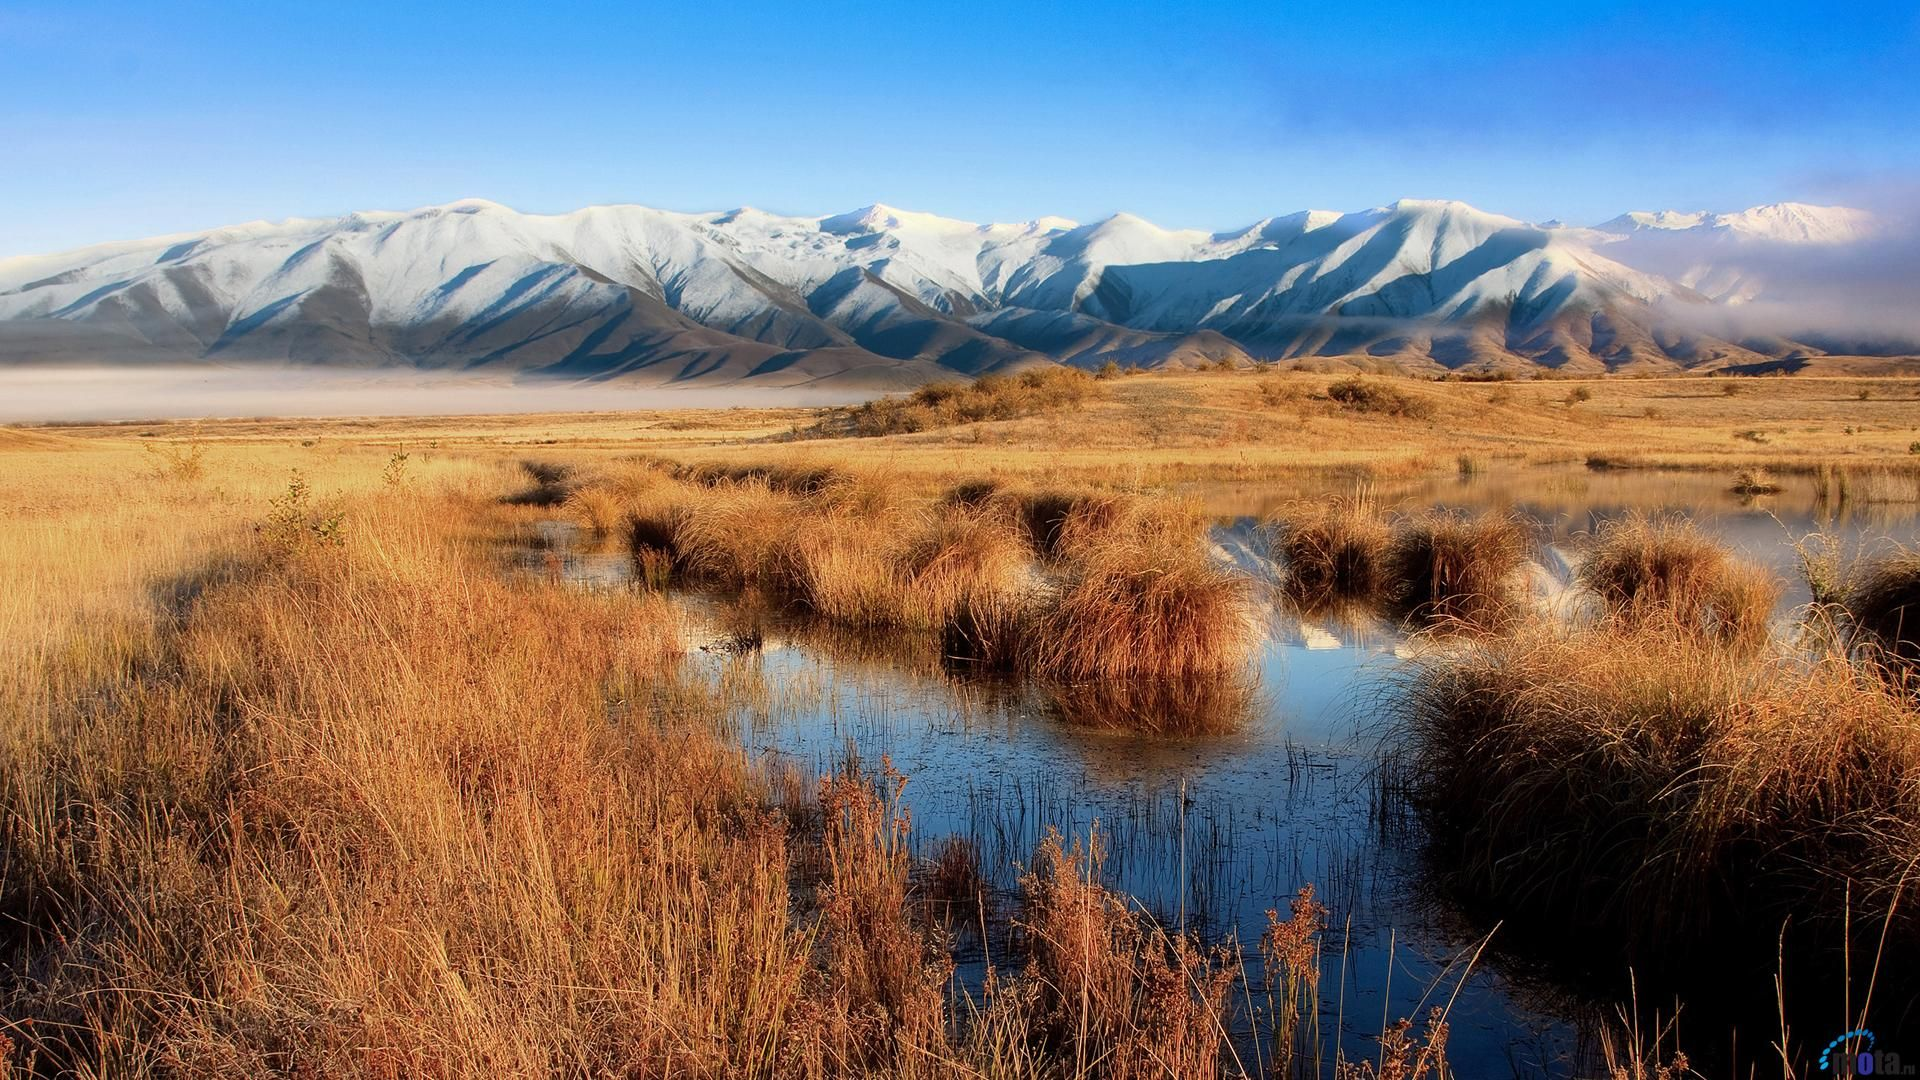 best background wallpapers reddit: Lake Poaka Twizel New Zealand Wallpaper [1920 X 1080